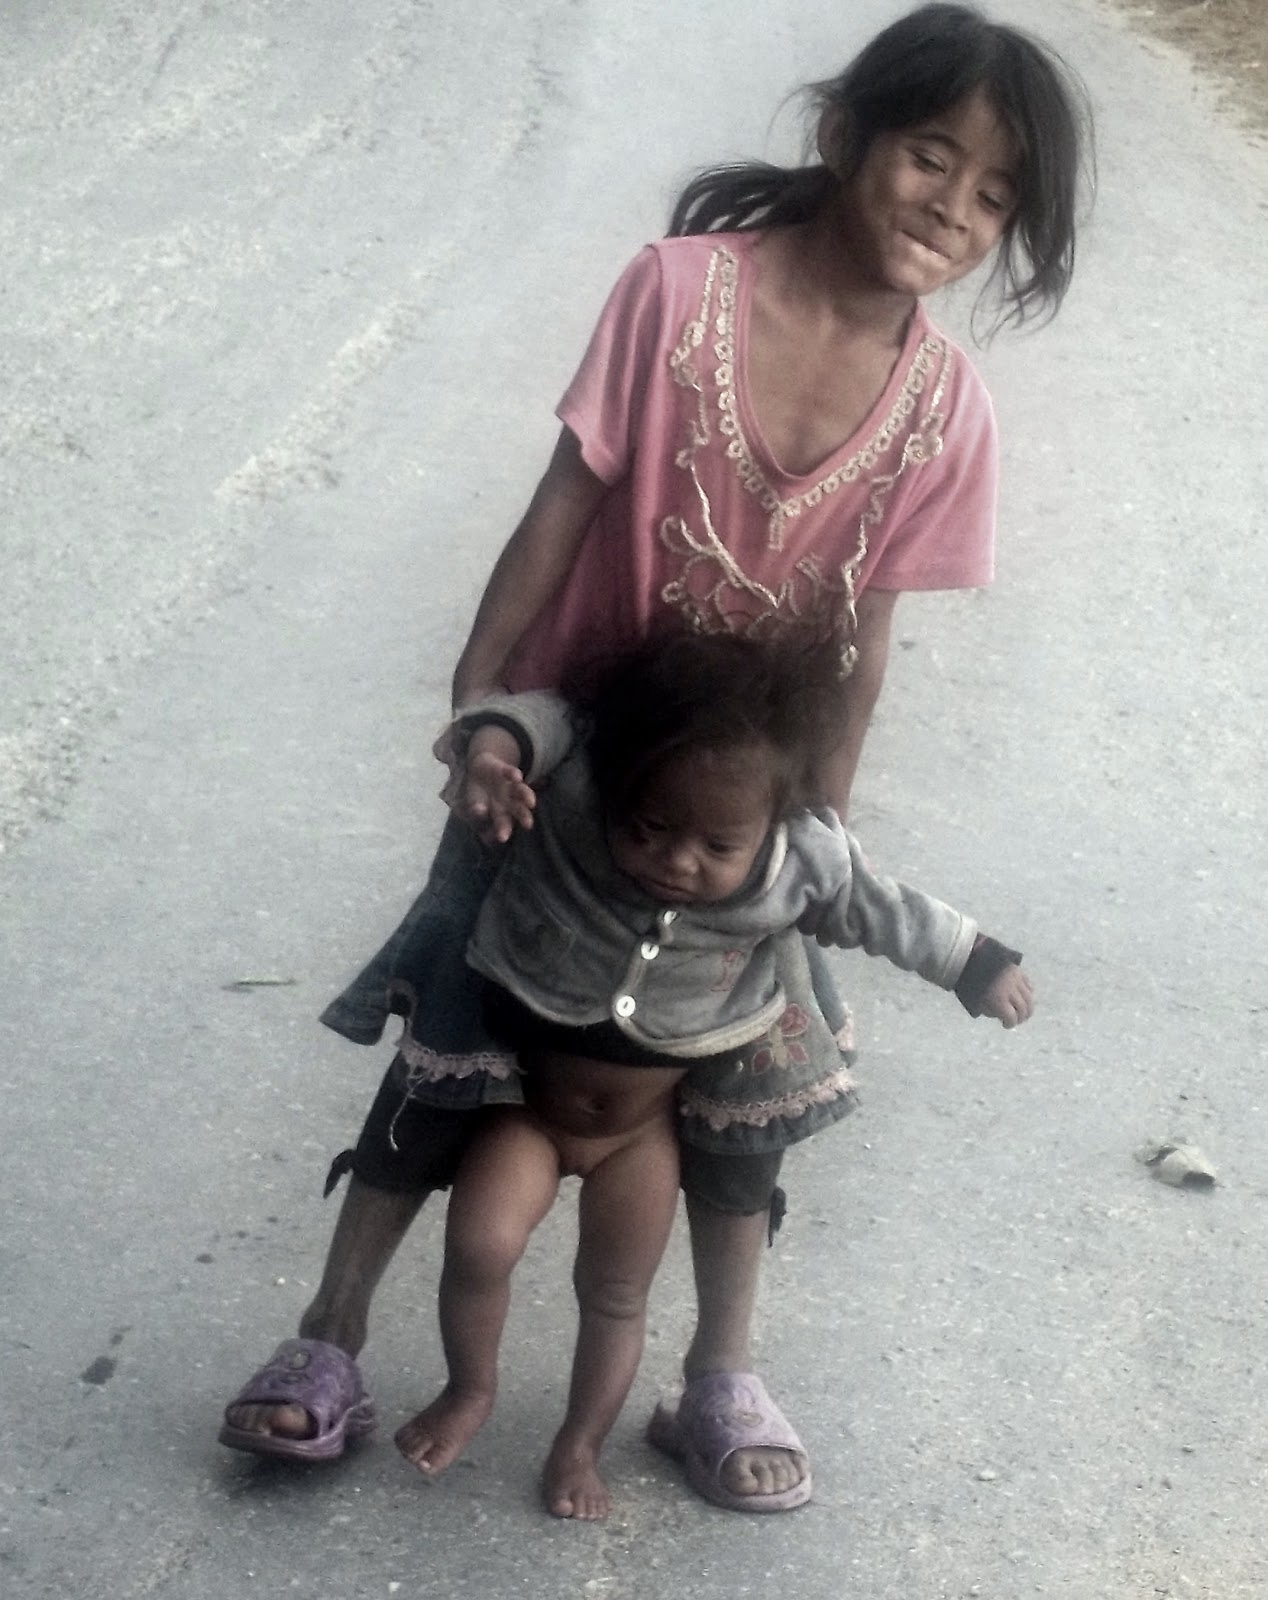 """pollyfan fuck 052""""Nyde pollyfan 10 """""""""""" Where the fuck have you gone?? ' The little girl was dragging her baby  sister towards home. She smiled at me and just moved on."""